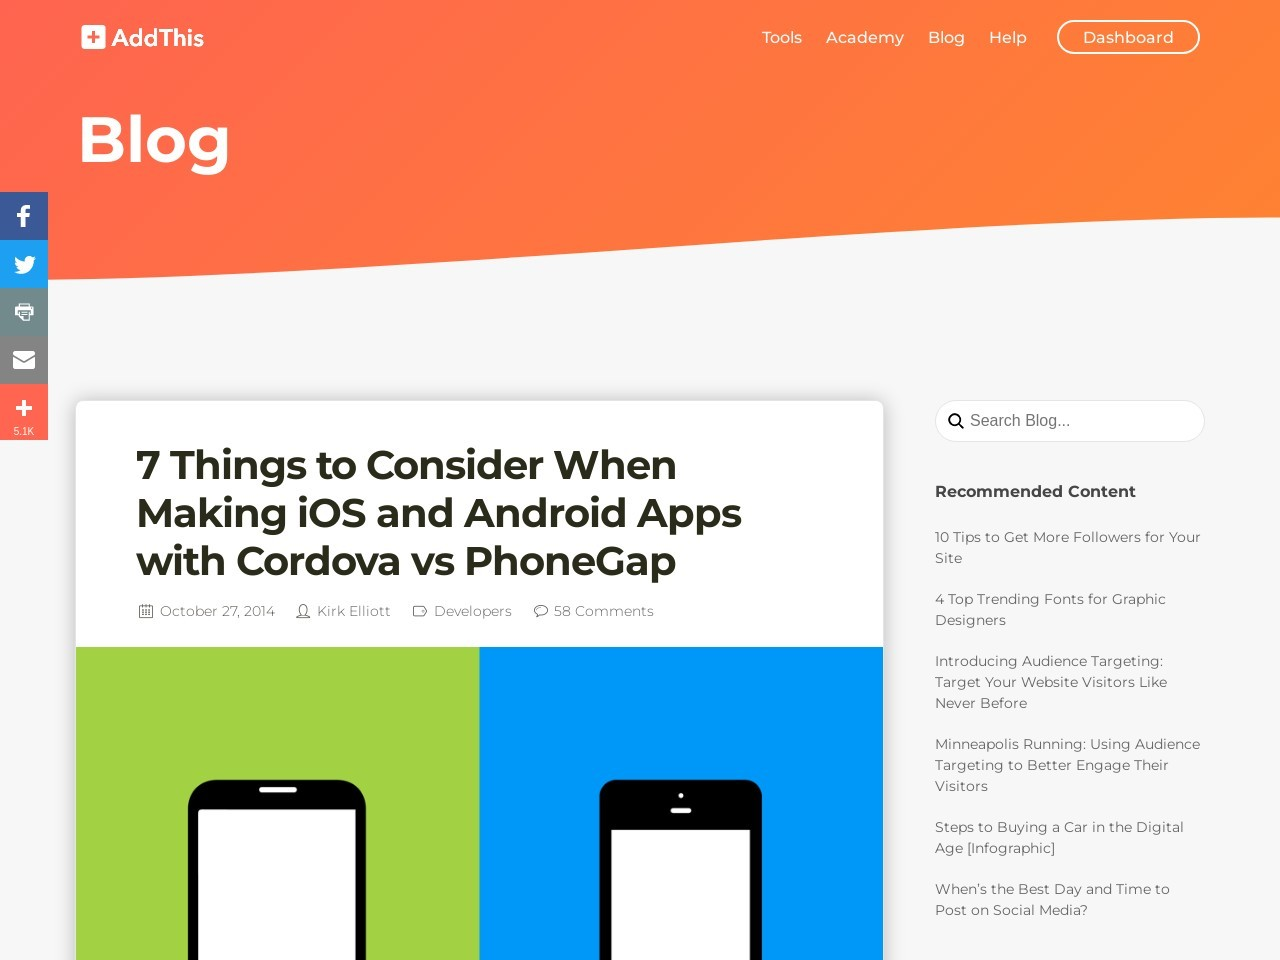 7 Things to Consider When Making iOS and Android Apps …